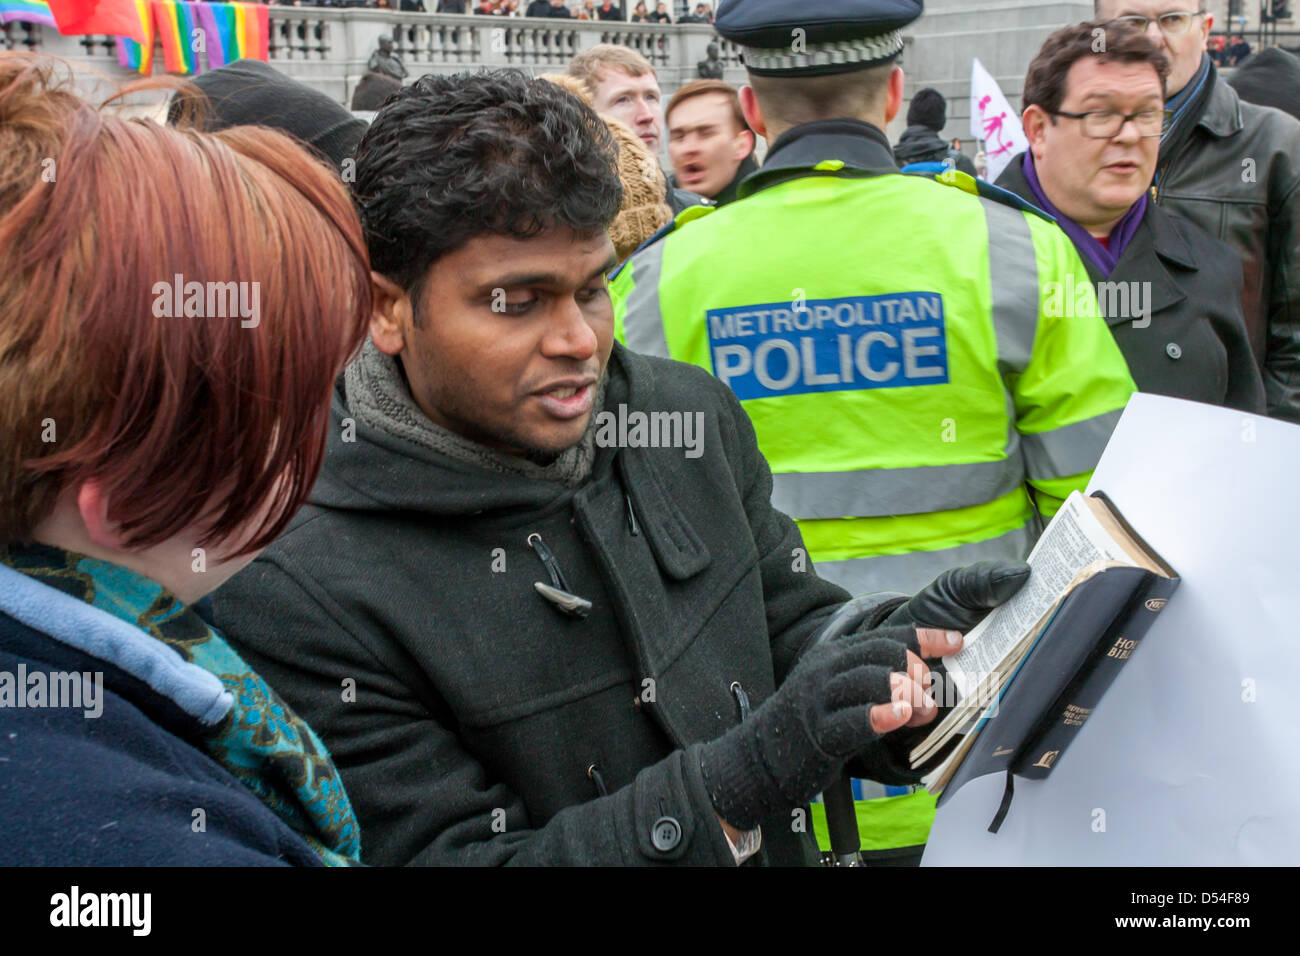 A Christian reads extracts of the bible to an LGBT rights supporter. Protesters on both sides of the argument on - Stock Image